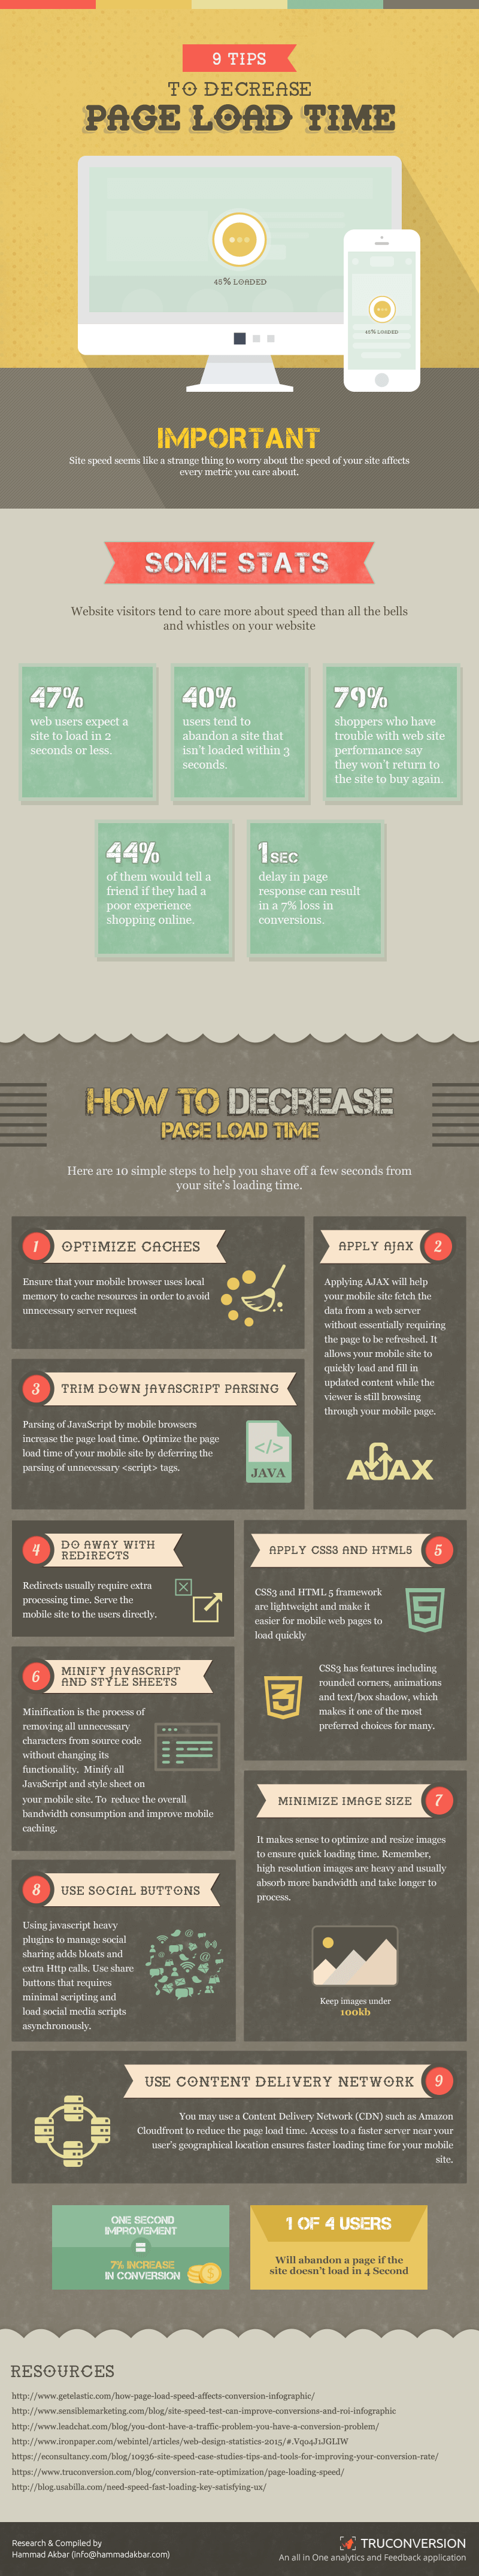 9 Tips to Decrease Page Load Time #Infographic